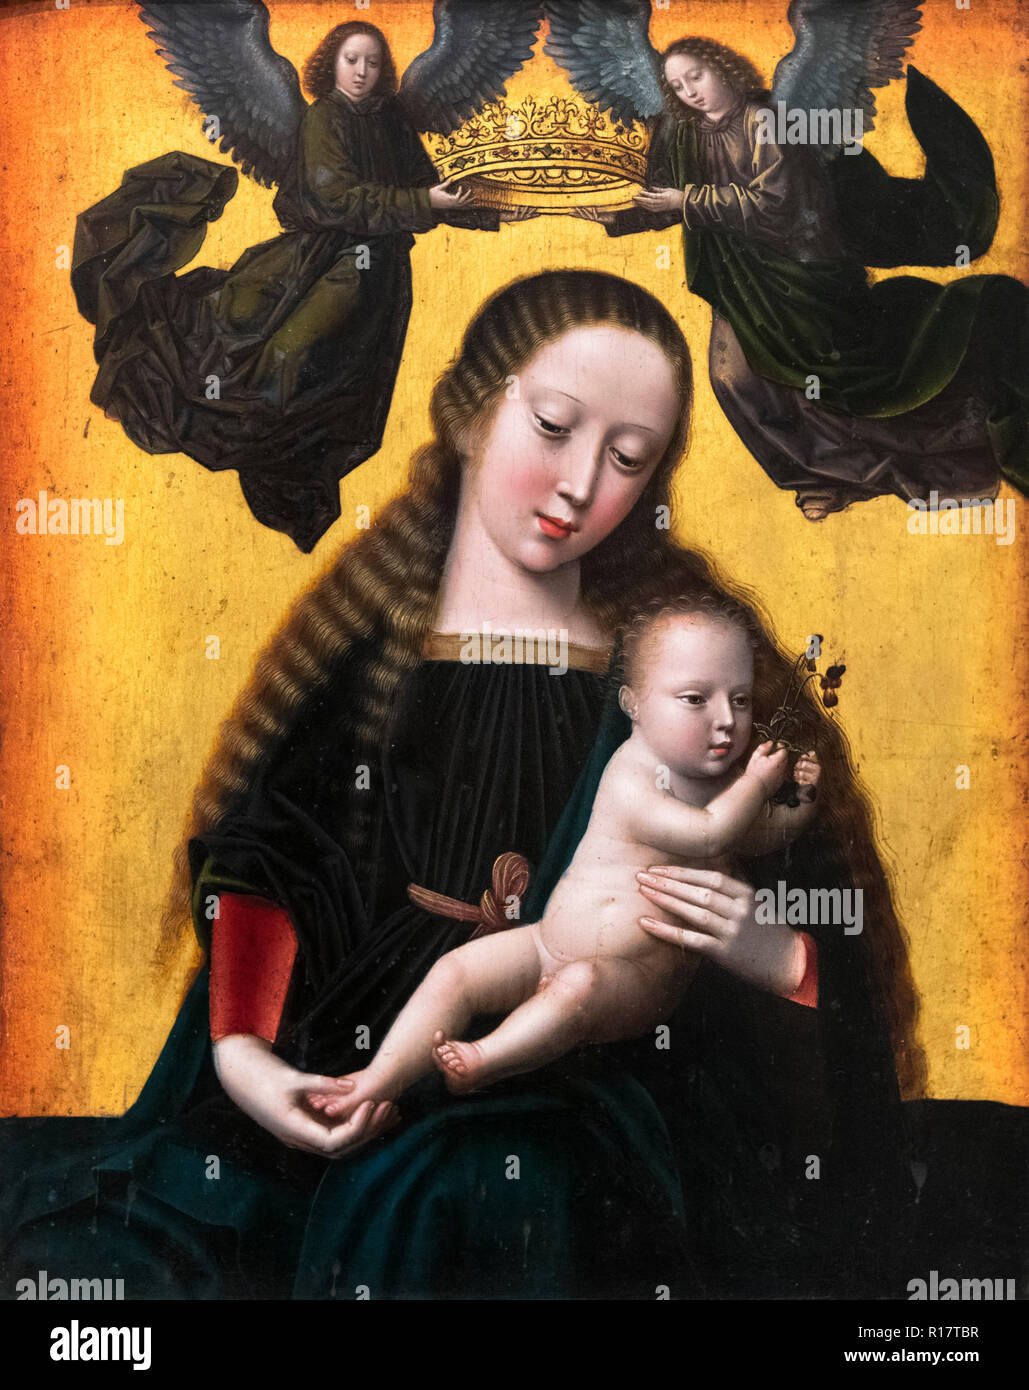 Virgin and Child by Gerard David (c.1460-1523), oil on panel, end 15th century. - Stock Image